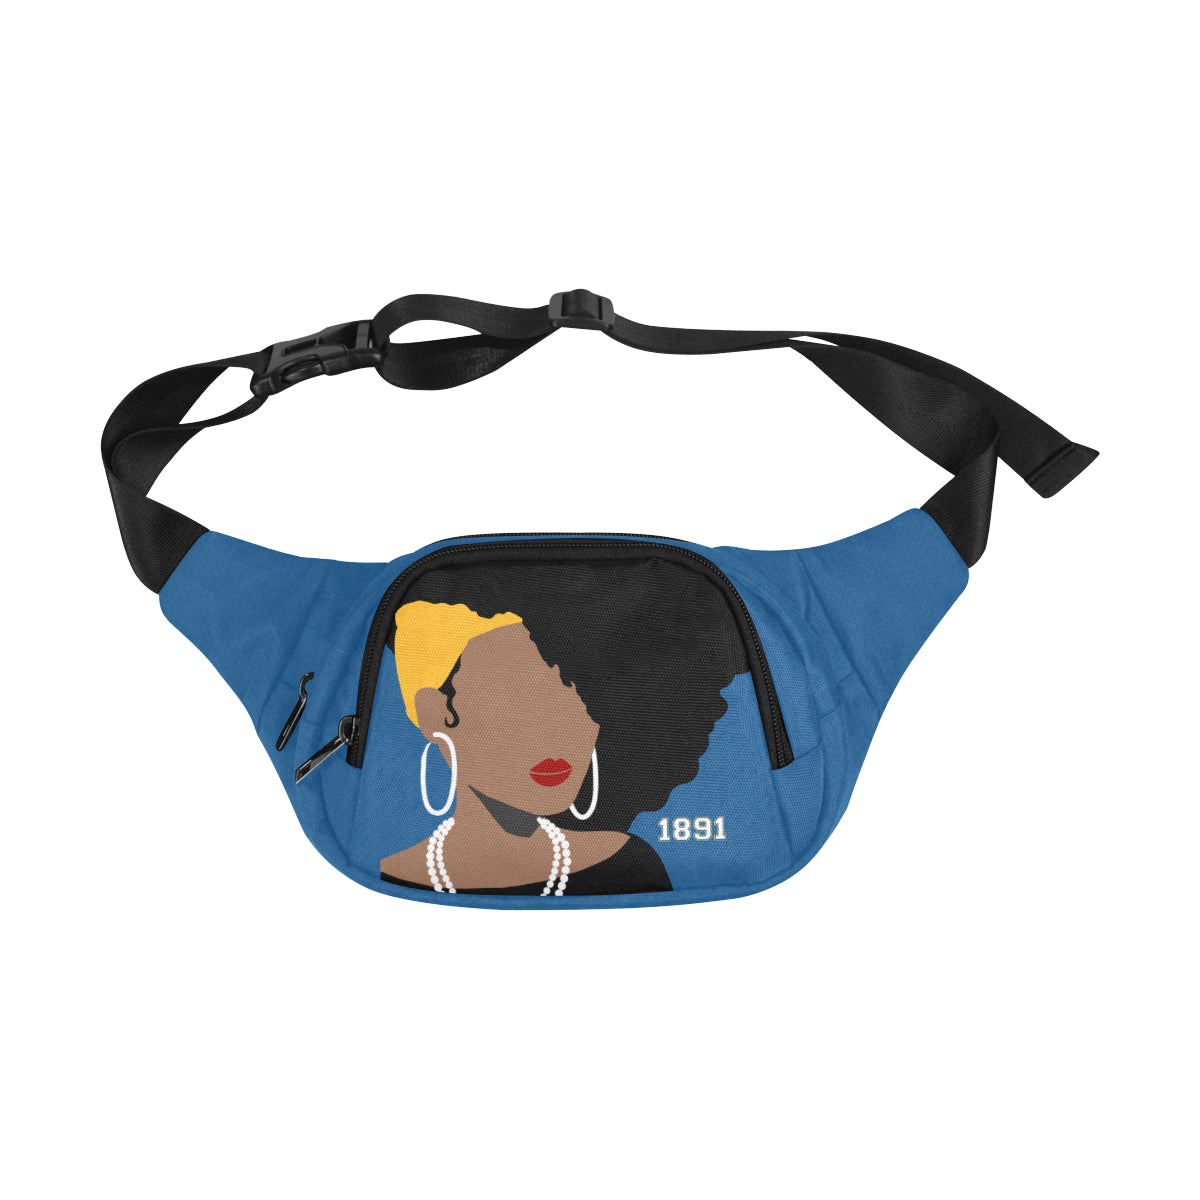 Bougie - Terrie 1891 Fanny Pack